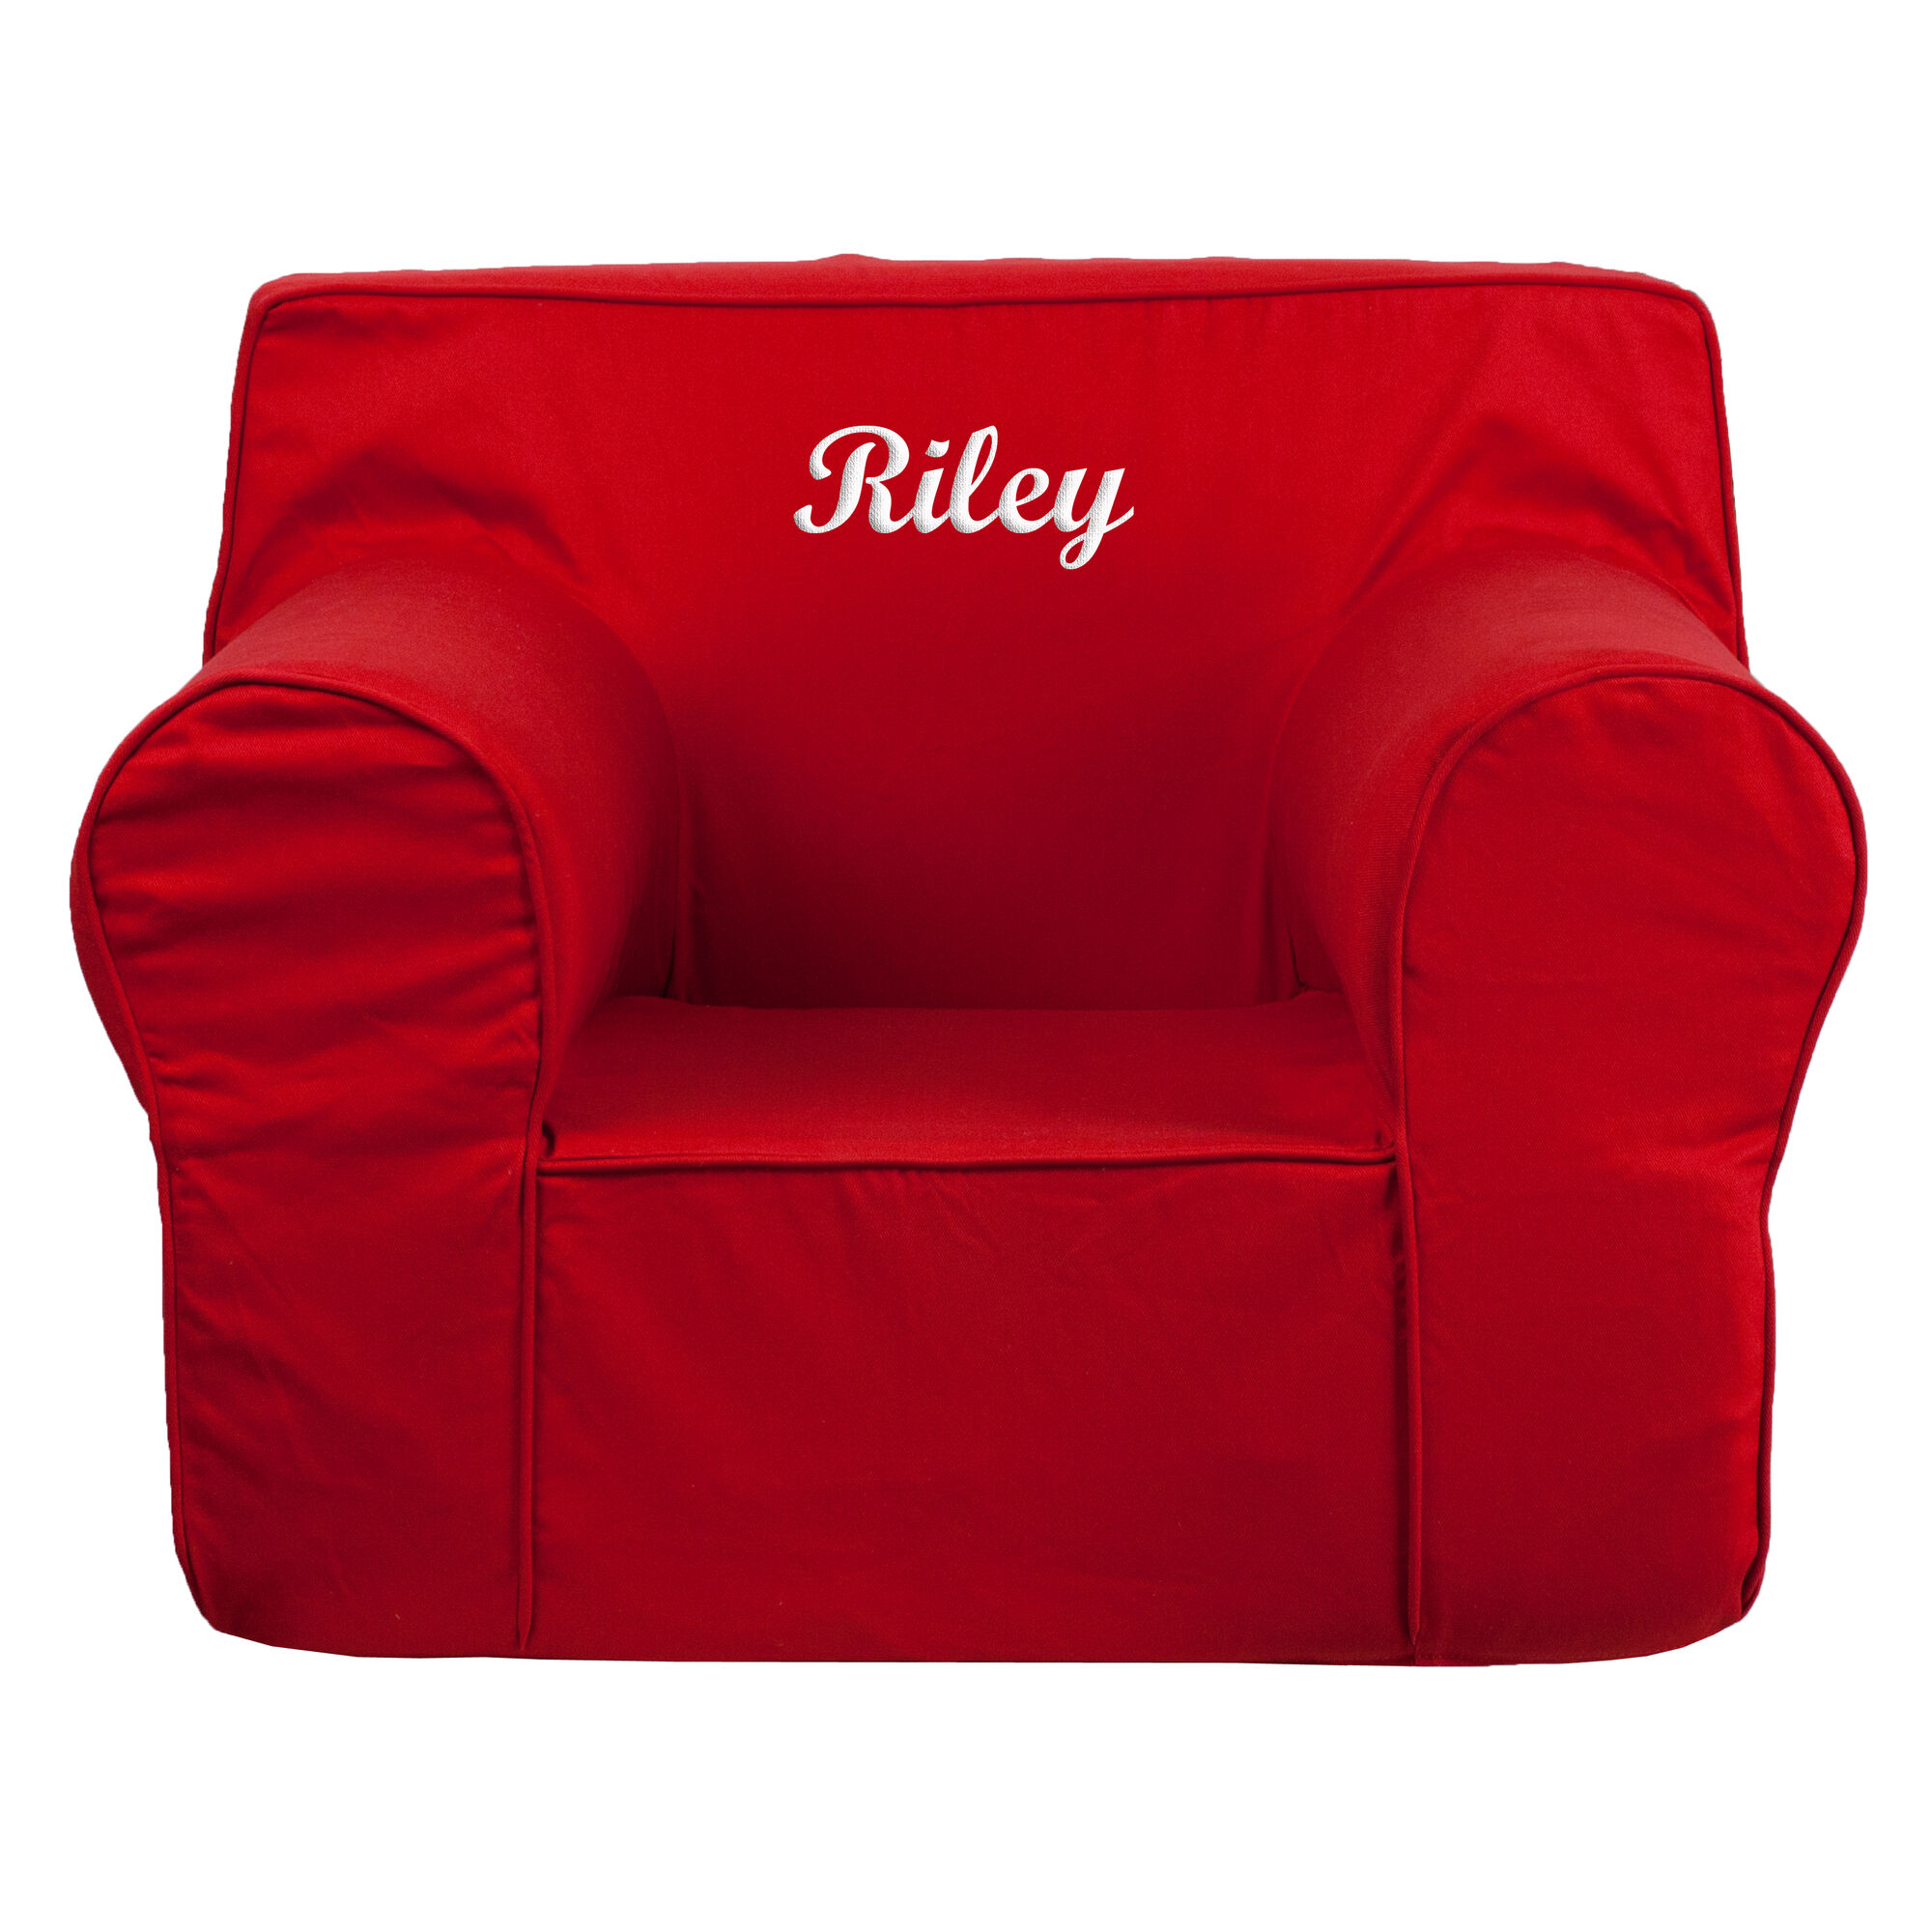 Flash Furniture DG LGE CH KID SOLID RED EMB GG at Bizchair